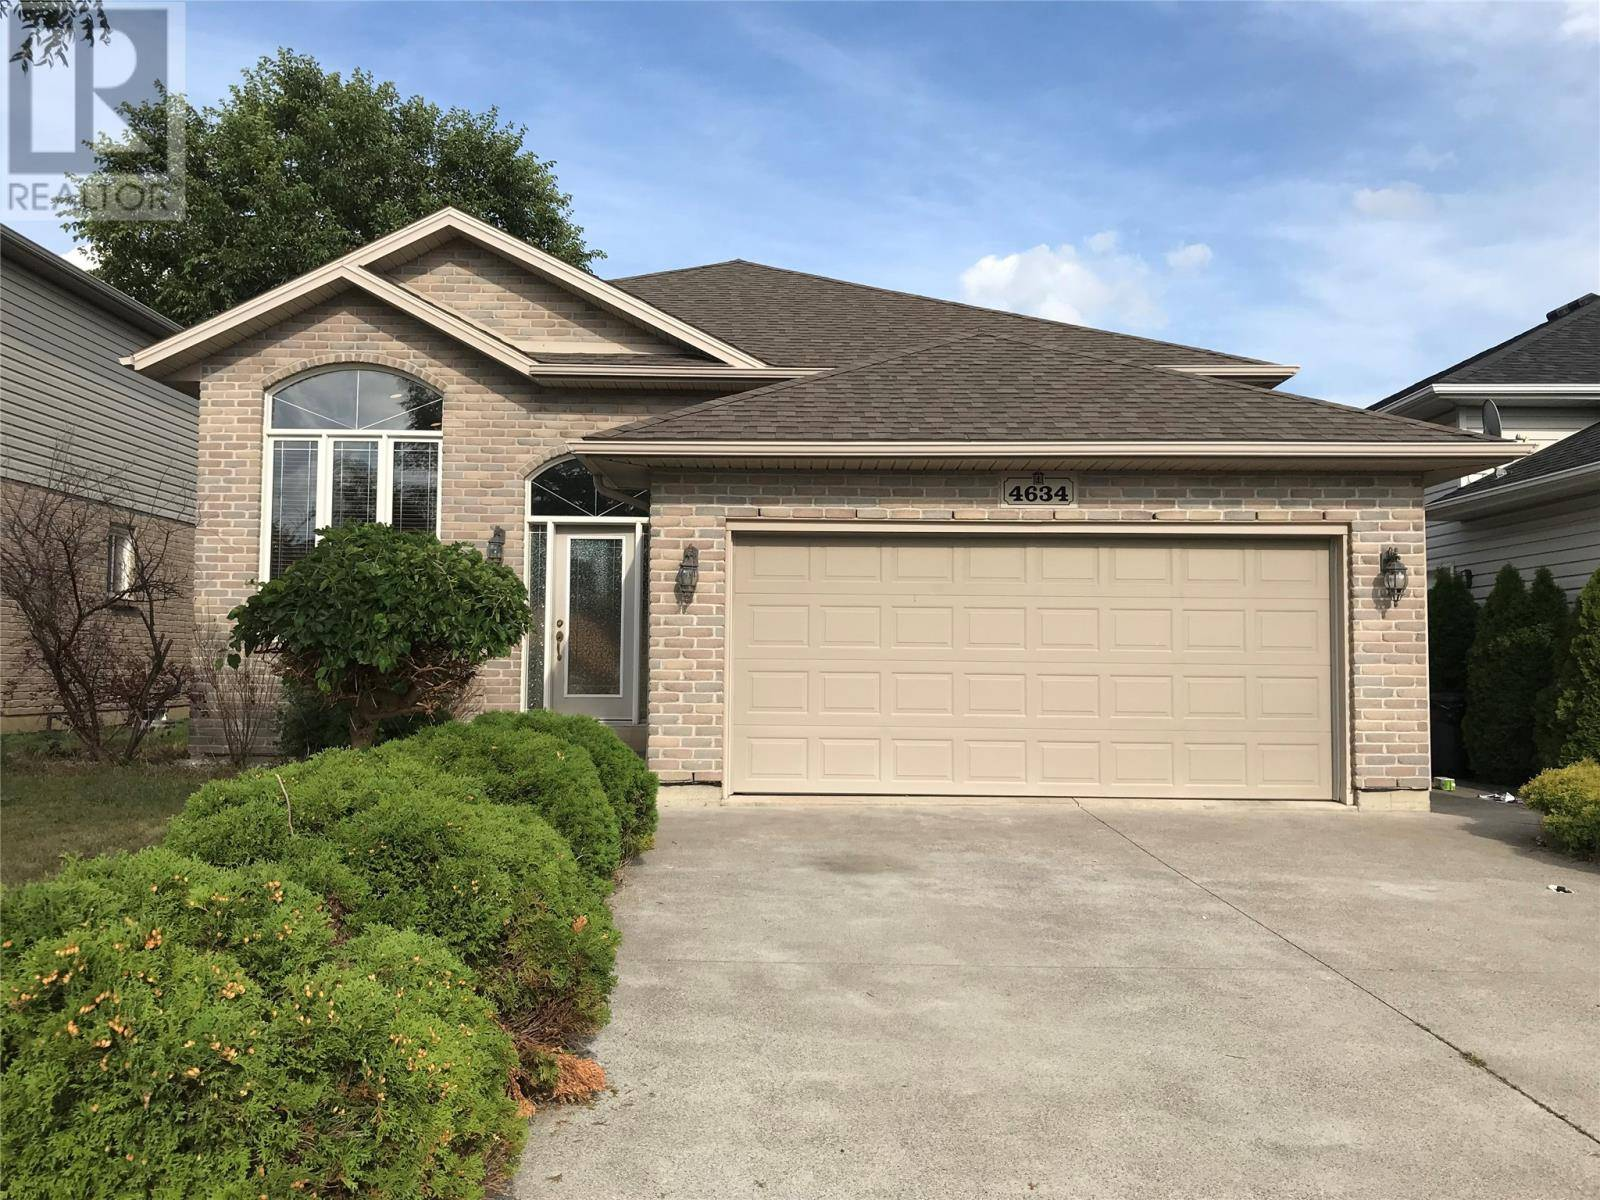 House for sale at 4634 Helsinki Cres Windsor Ontario - MLS: 19025067